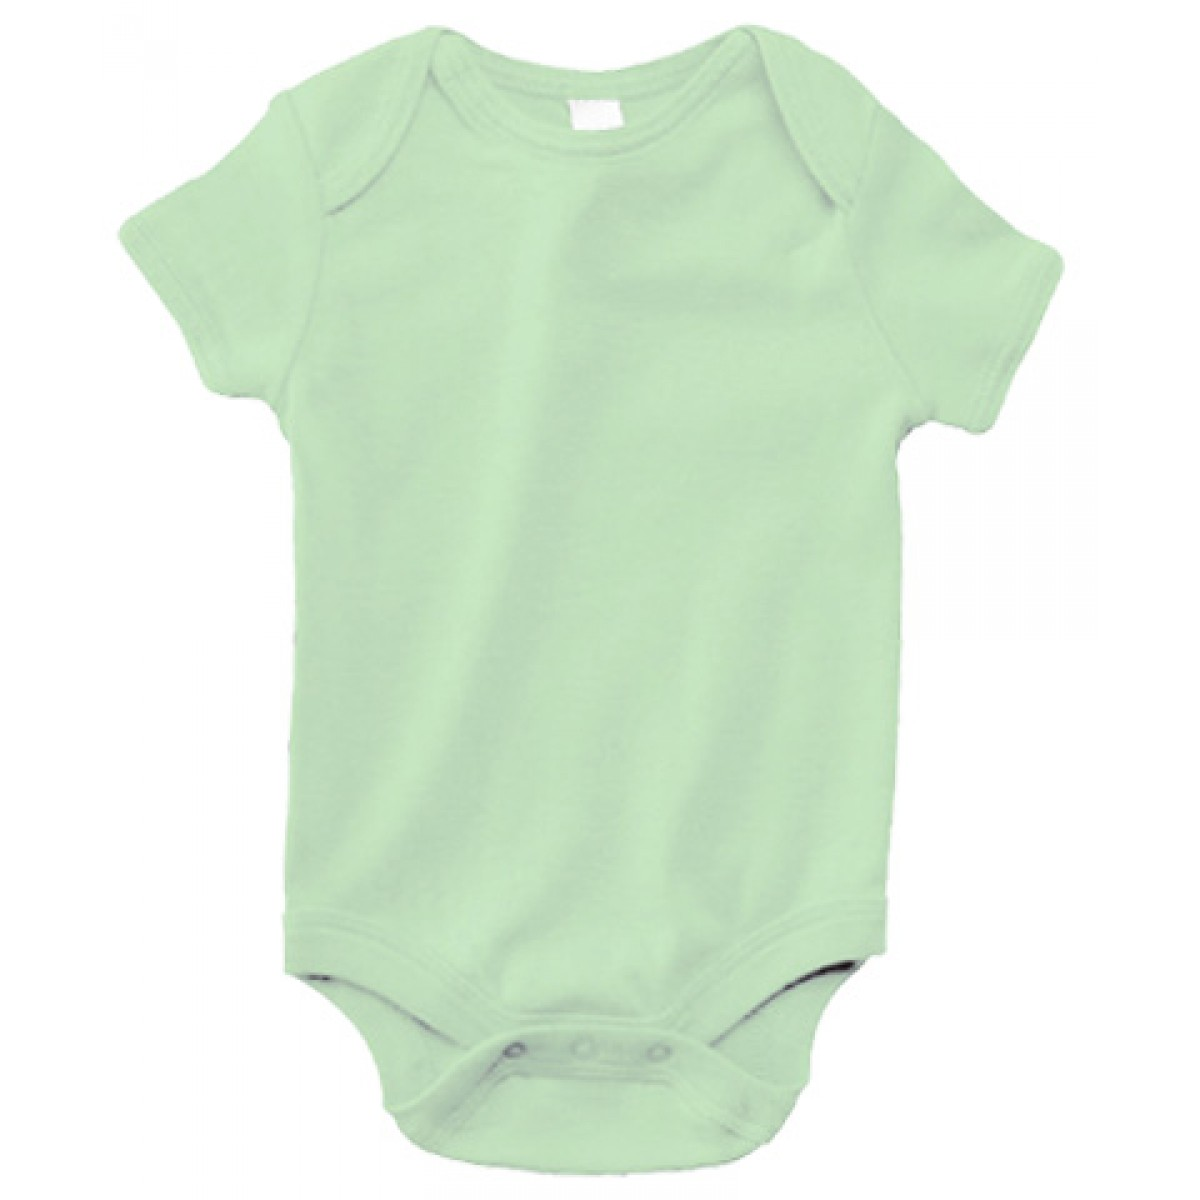 Pale Green B100 Bella + Canvas Infants'Short-Sleeve Baby -Pale Green-12-18 Months